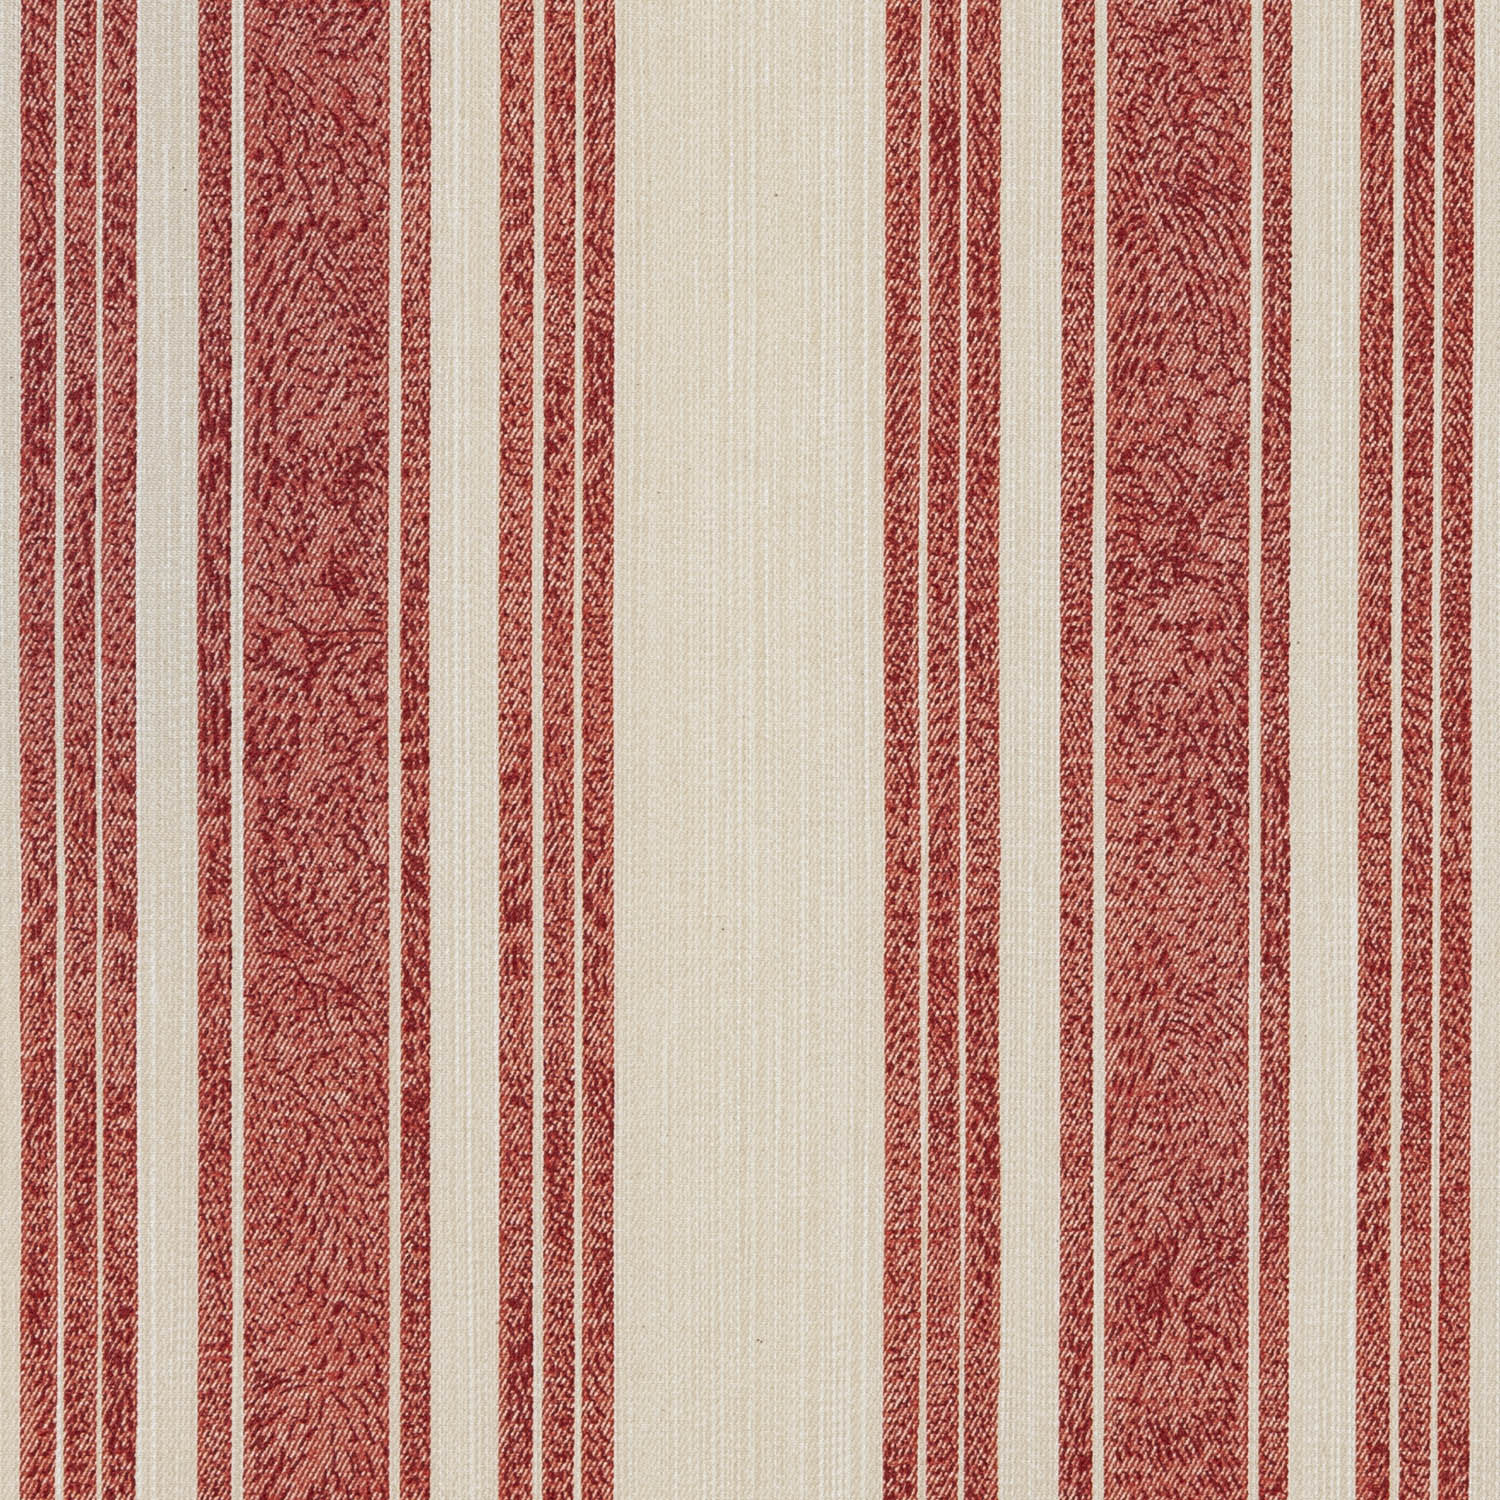 tent-001-red-tented-stripe-union-1